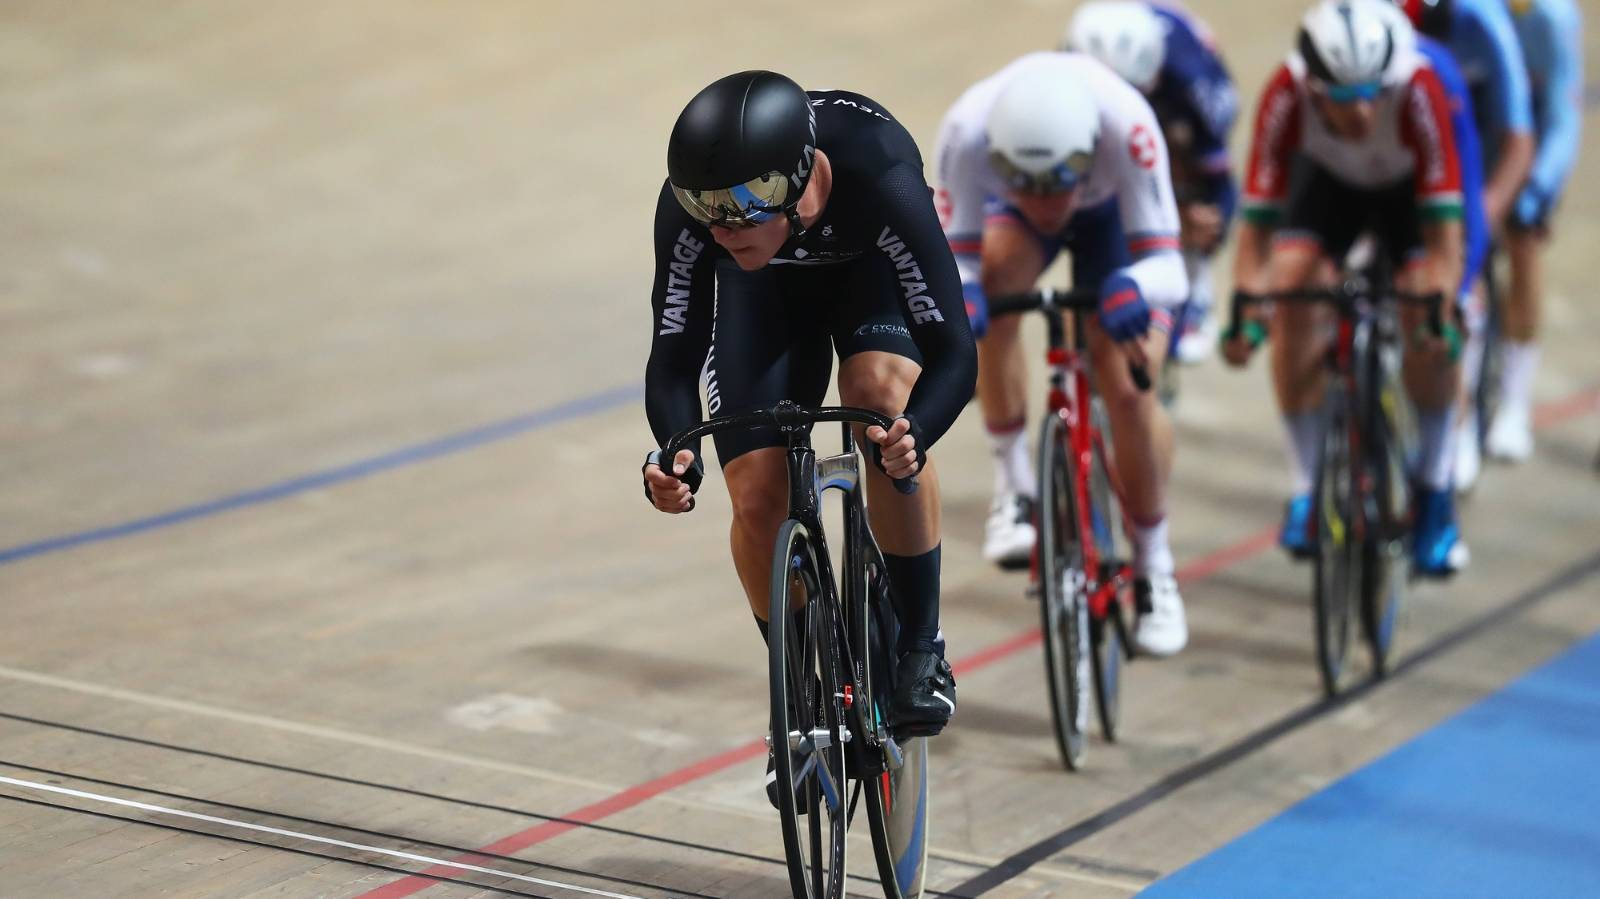 NZ on track for cycling success at Tokyo Olympics